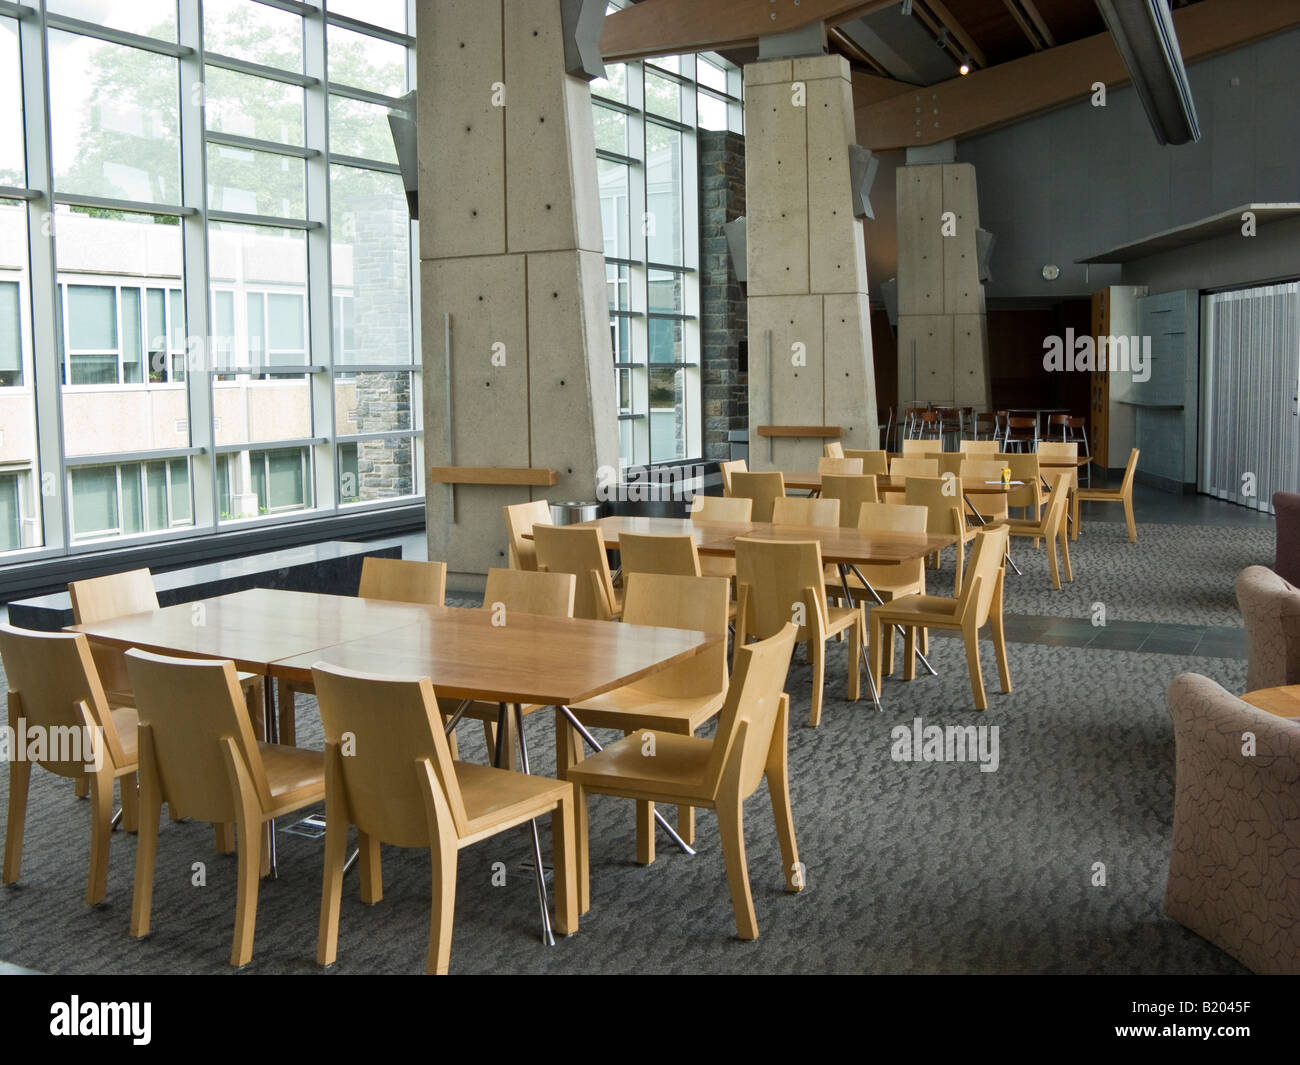 Commons interior with fritted glass panels, Swarthmore College Unified Science Center, Pennsylvania, USA - Stock Image